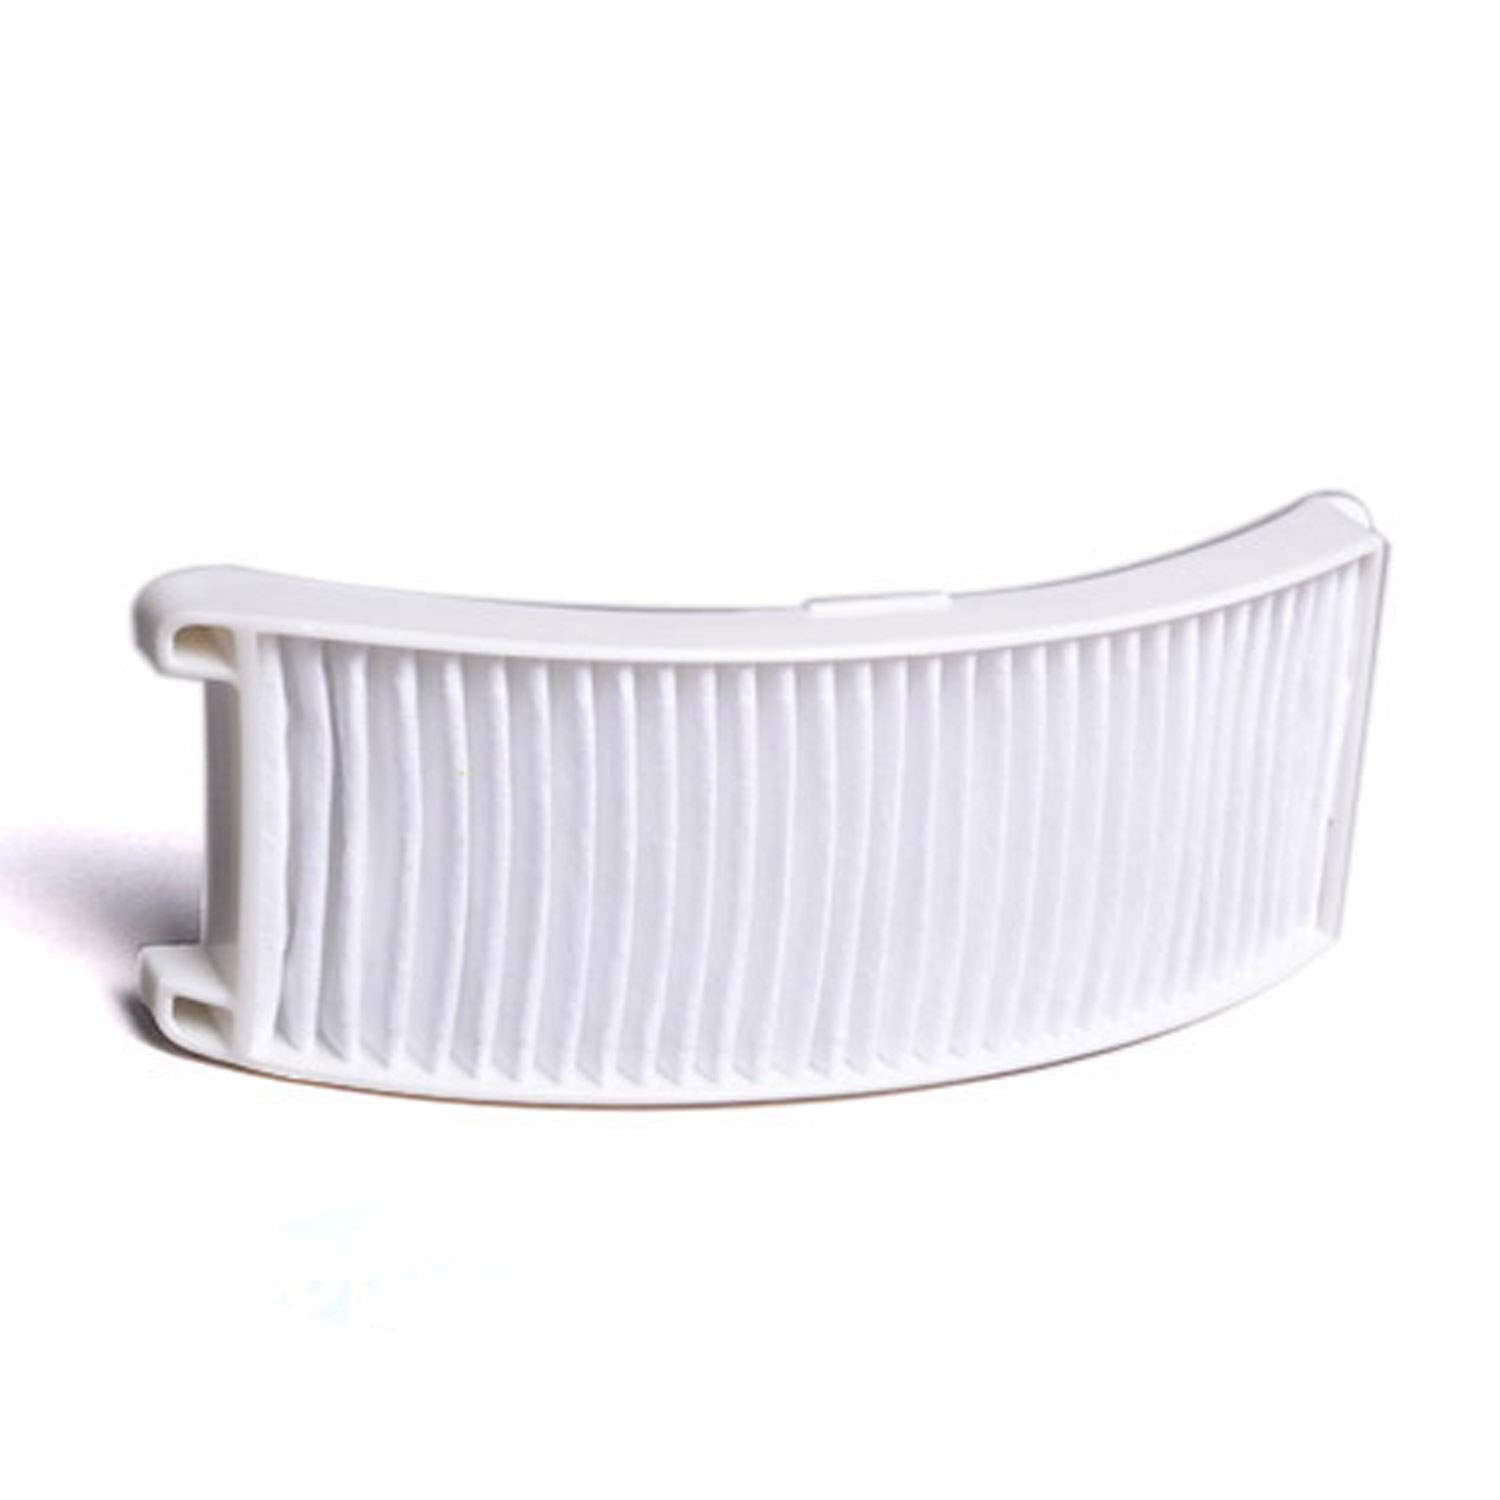 Bissell Upright Vacuum Cleaner Type 12 Hepa Filter Genuine Part # 2038037